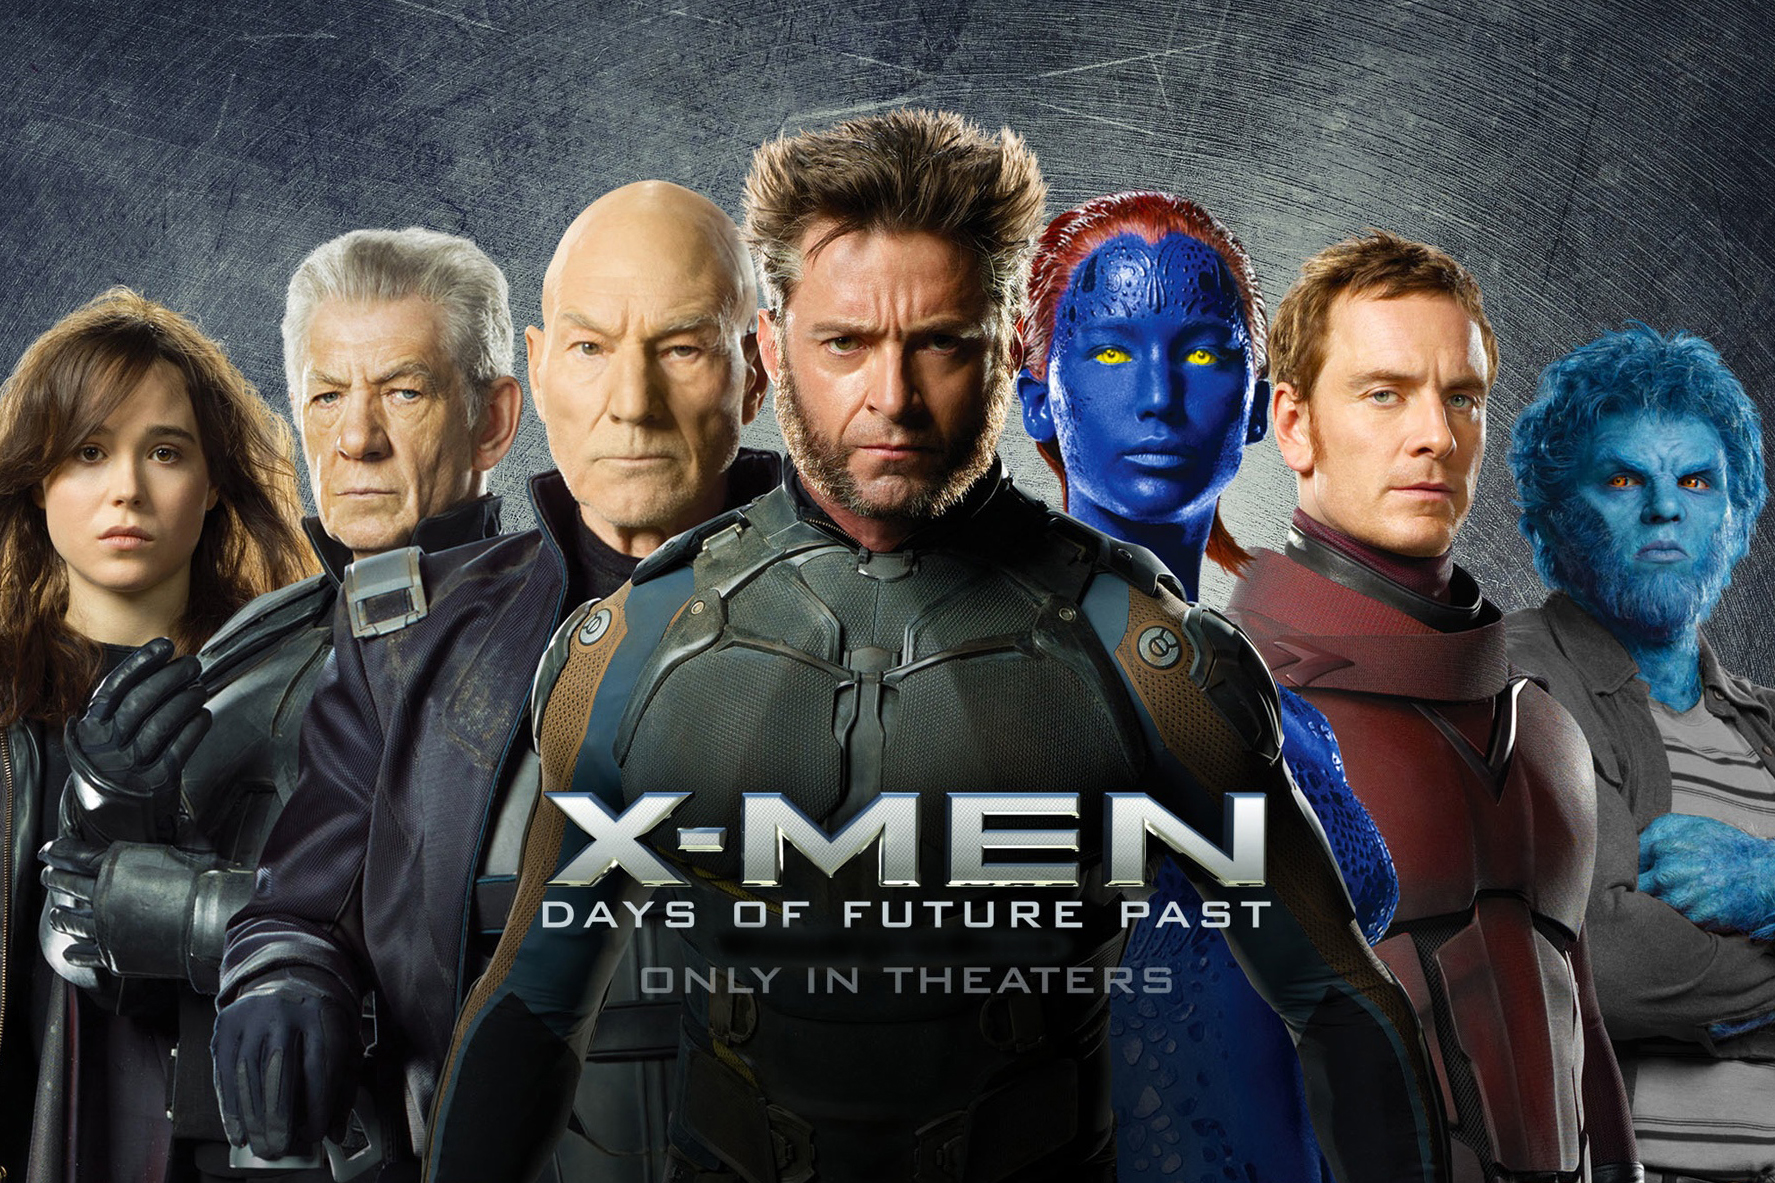 X-Men Days of Future Past banner 2 | 'TAIN'T THE MEAT… IT'S THE HUMANITY!